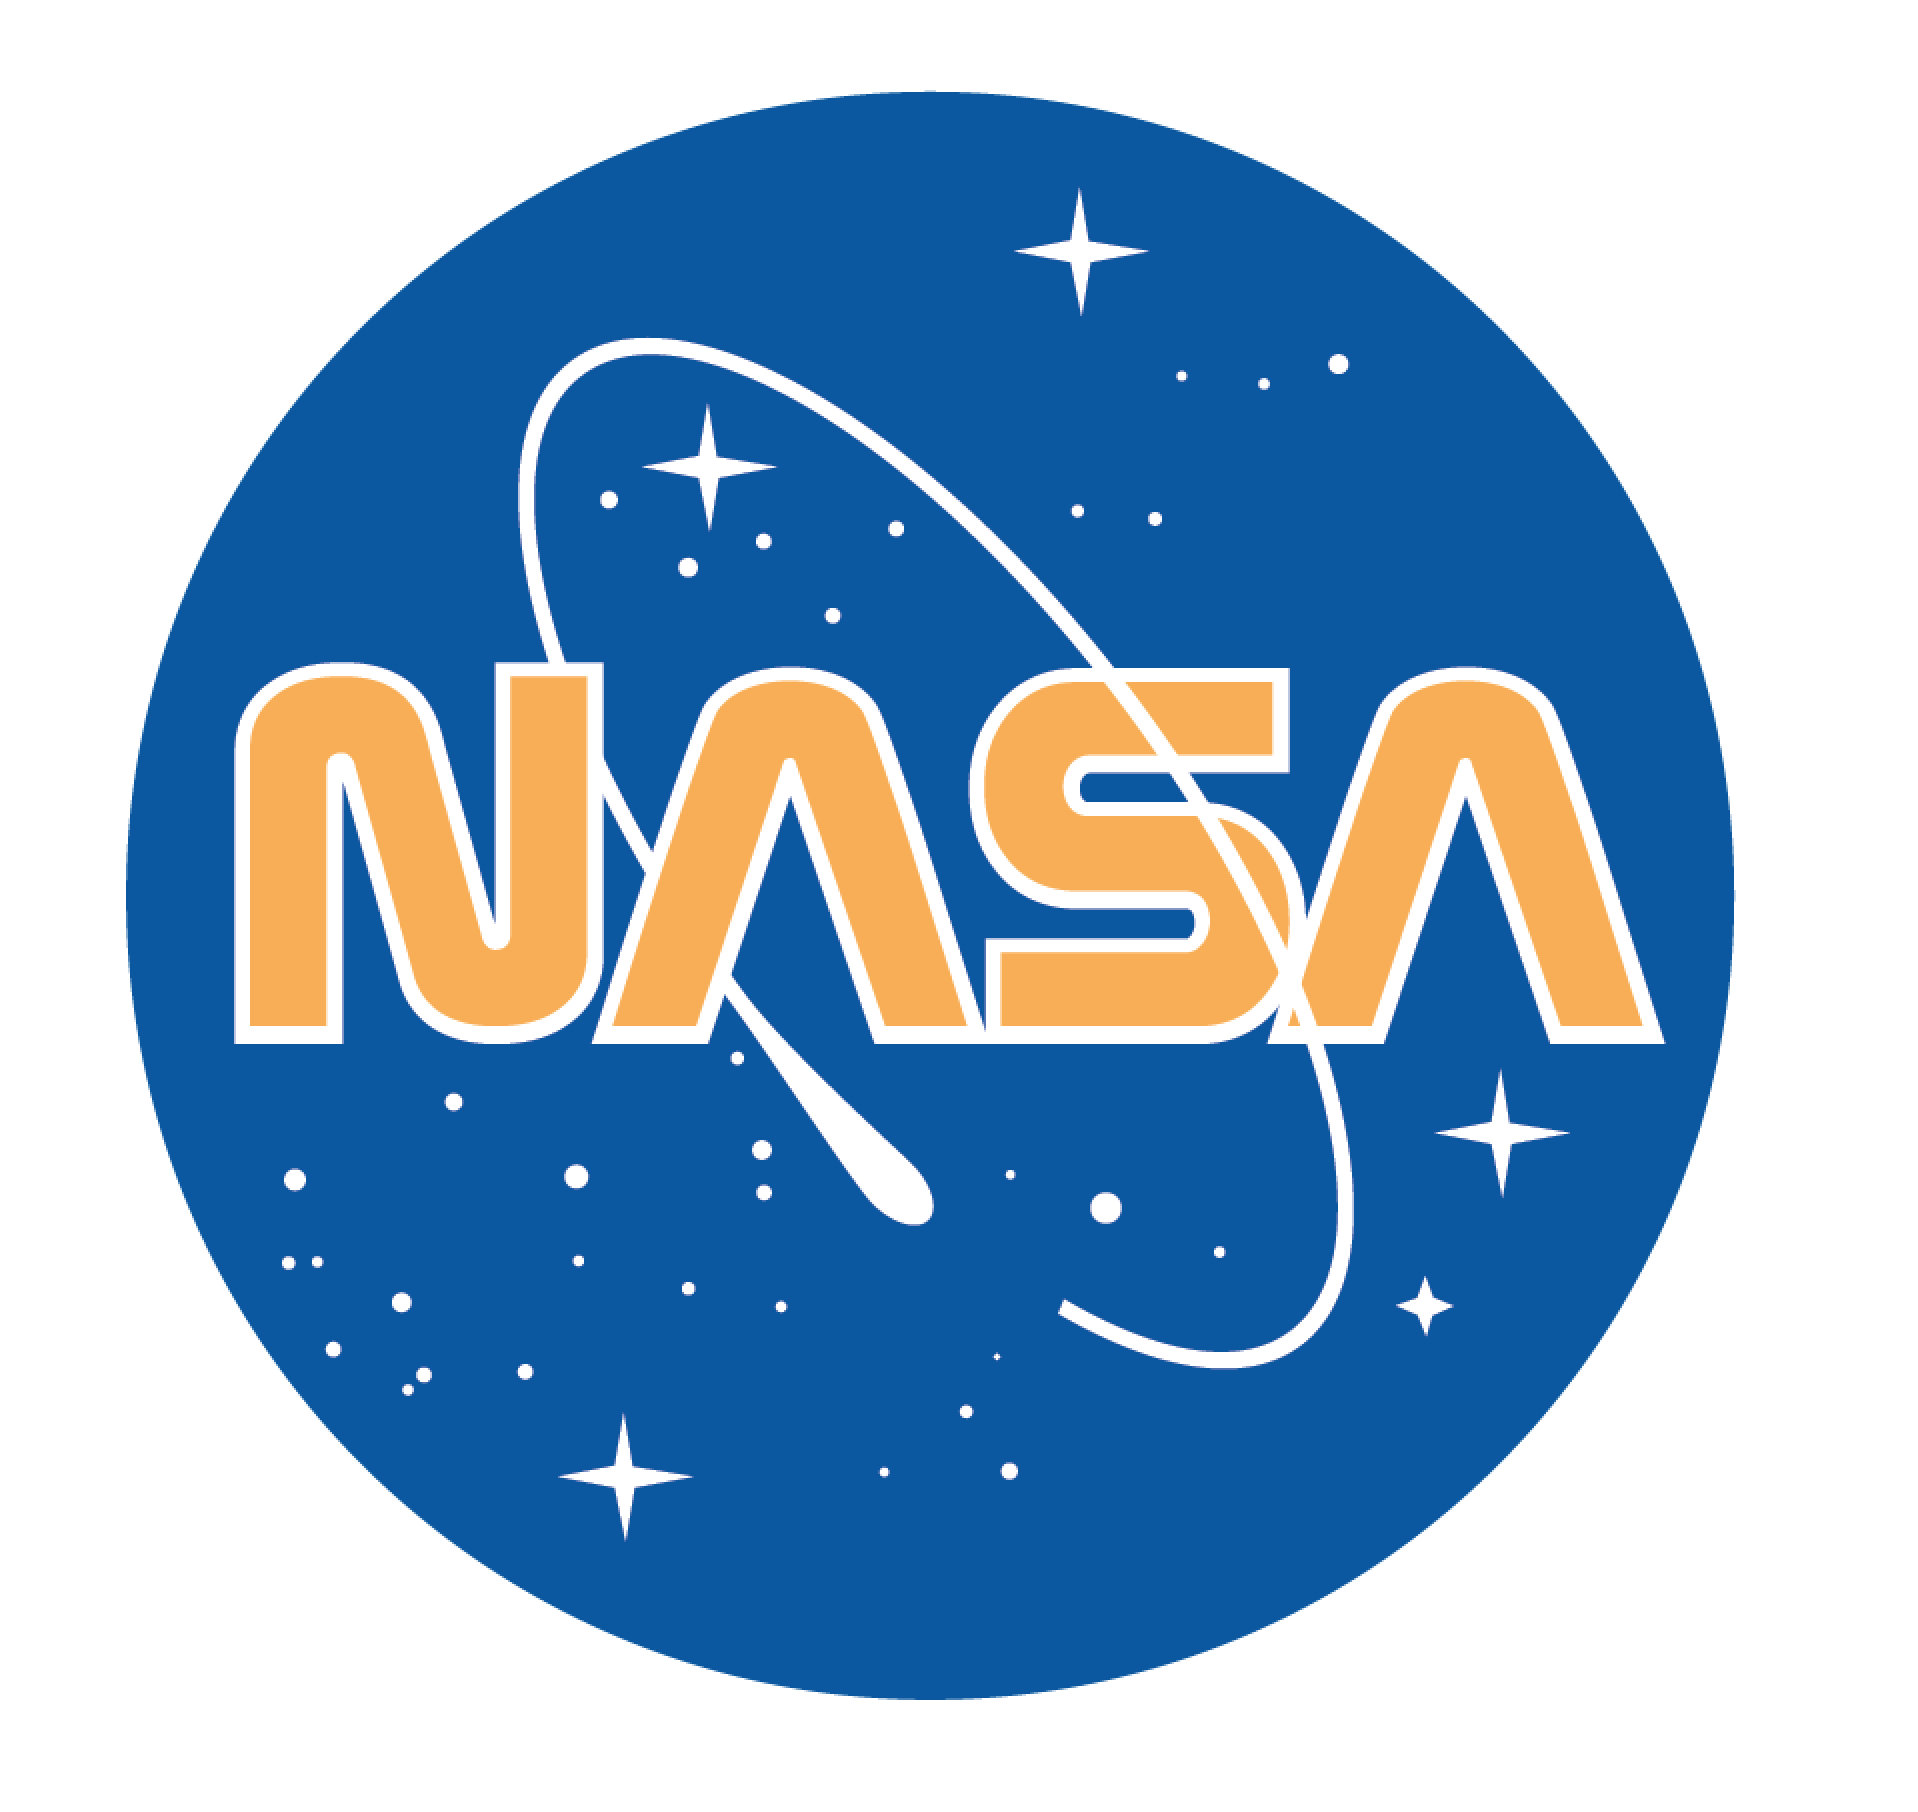 Nasa Logo blended with worm Nasa logo Nasa logo, Nasa